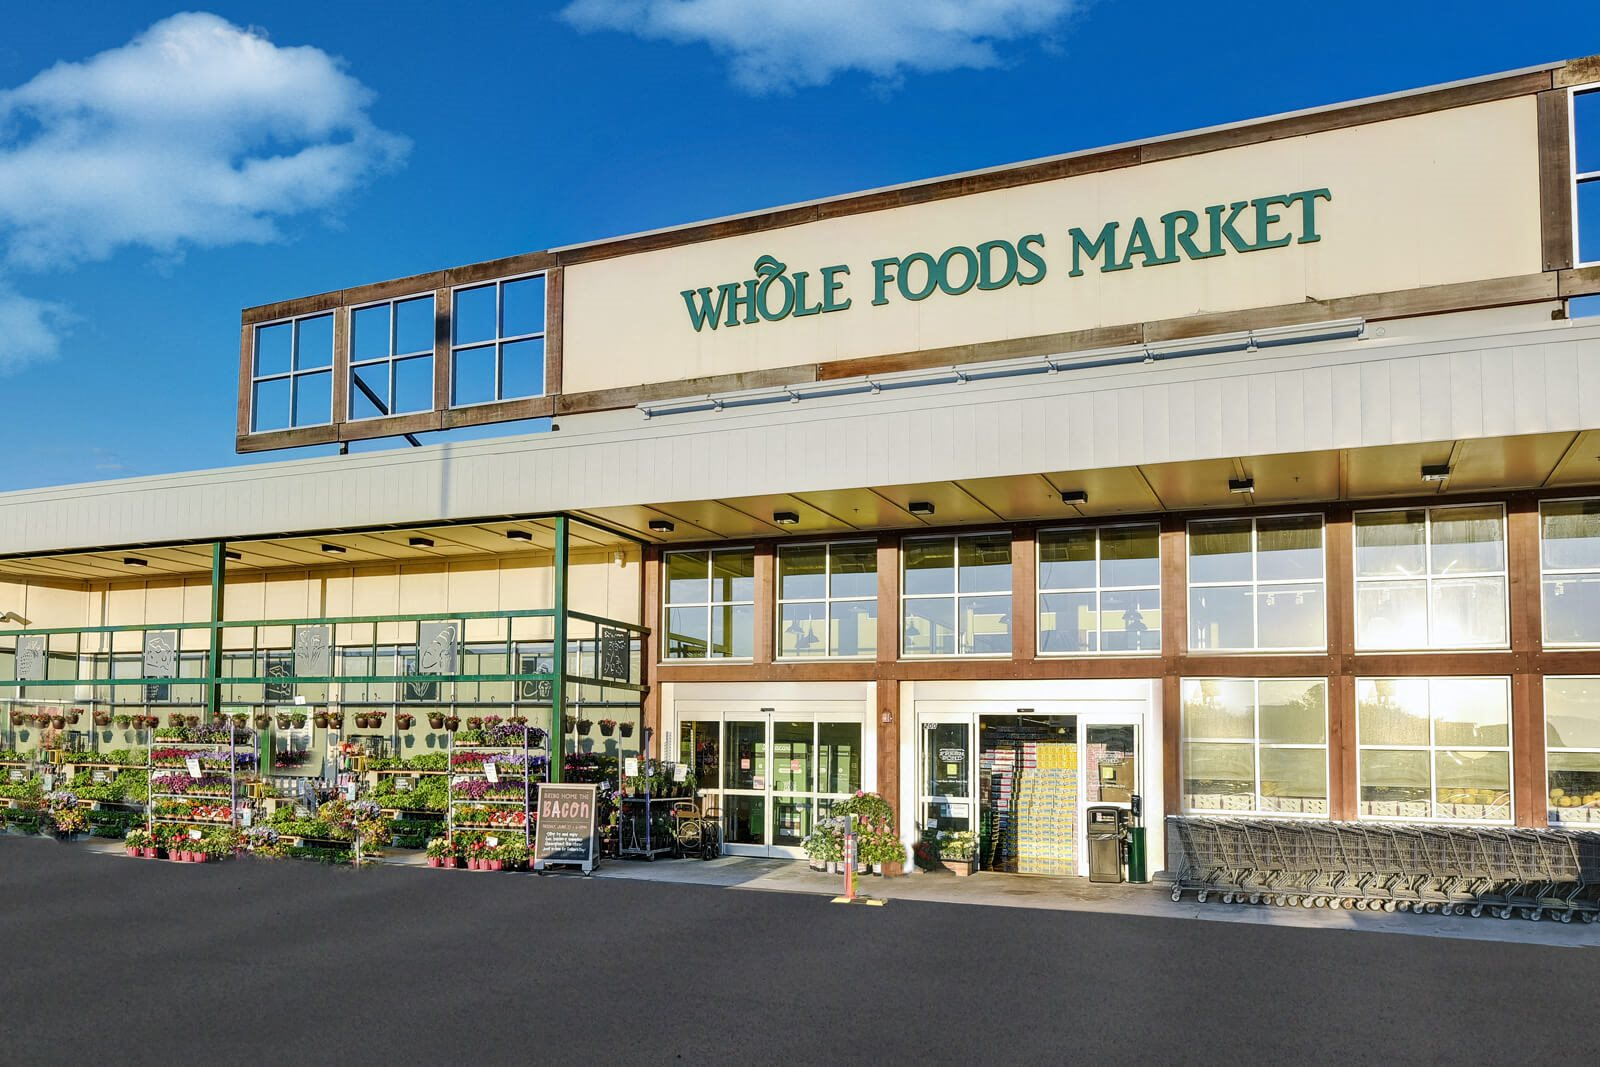 Whole Foods Is Located Less Than .25 Miles from Windsor at Cambridge Park, 160 Cambridge Park Drive, Cambridge